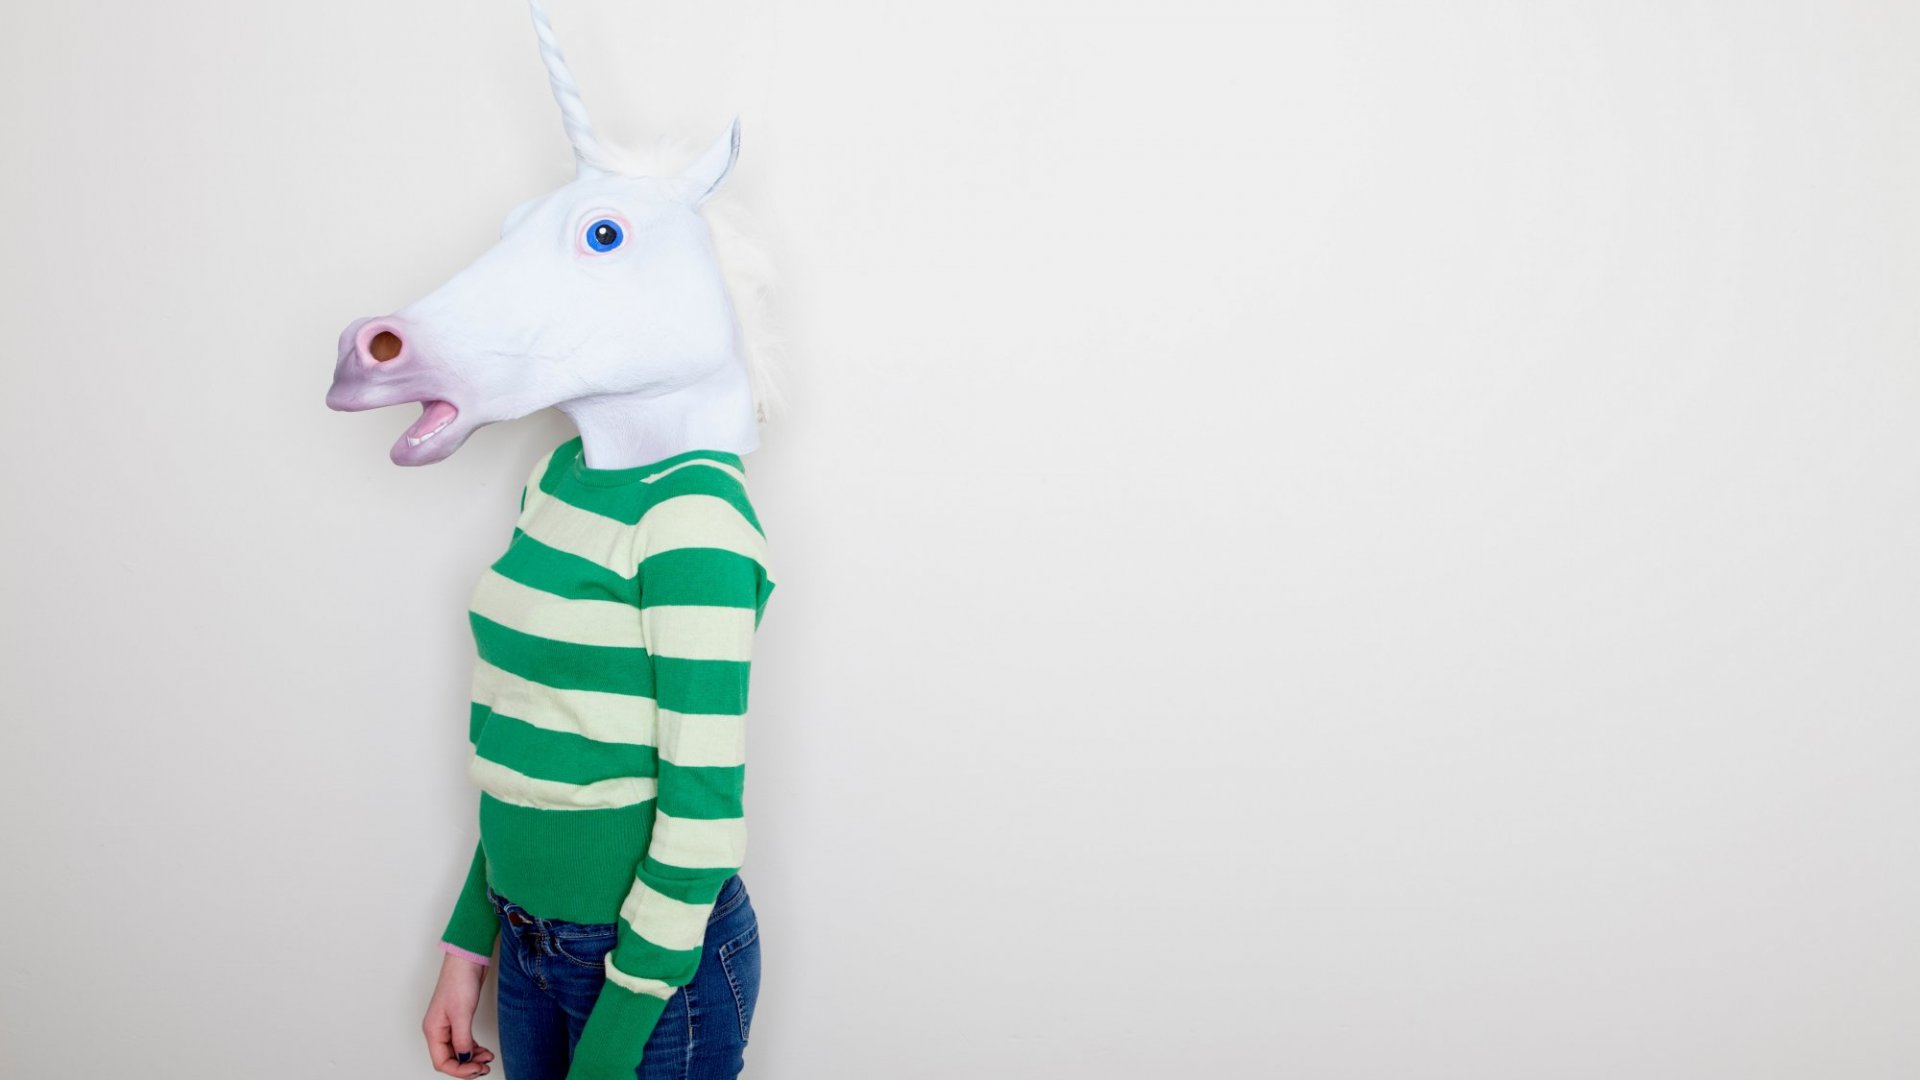 7 Lessons From the High-Tech Unicorns